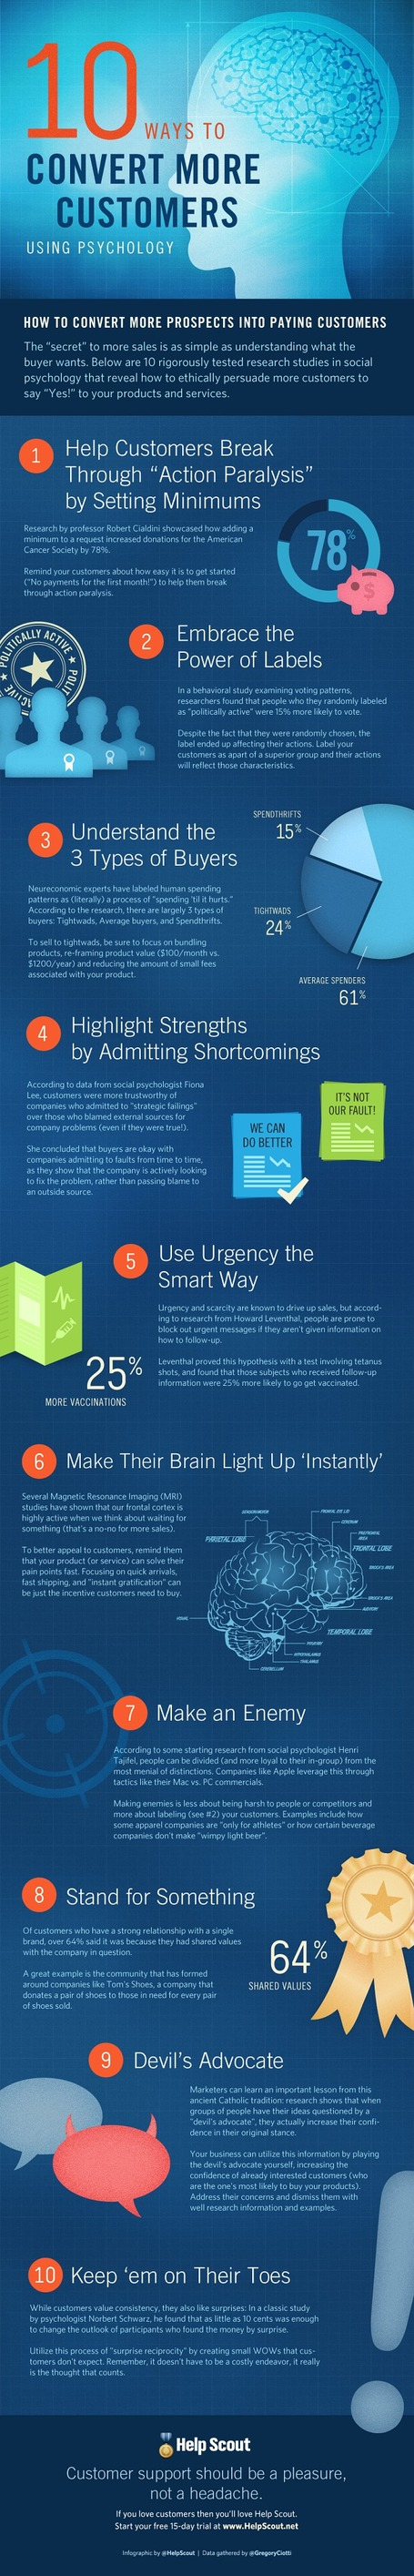 10 Ways to Convert More Customers With Psychology [INFOGRAPHIC] | Actualidad Express | Scoop.it